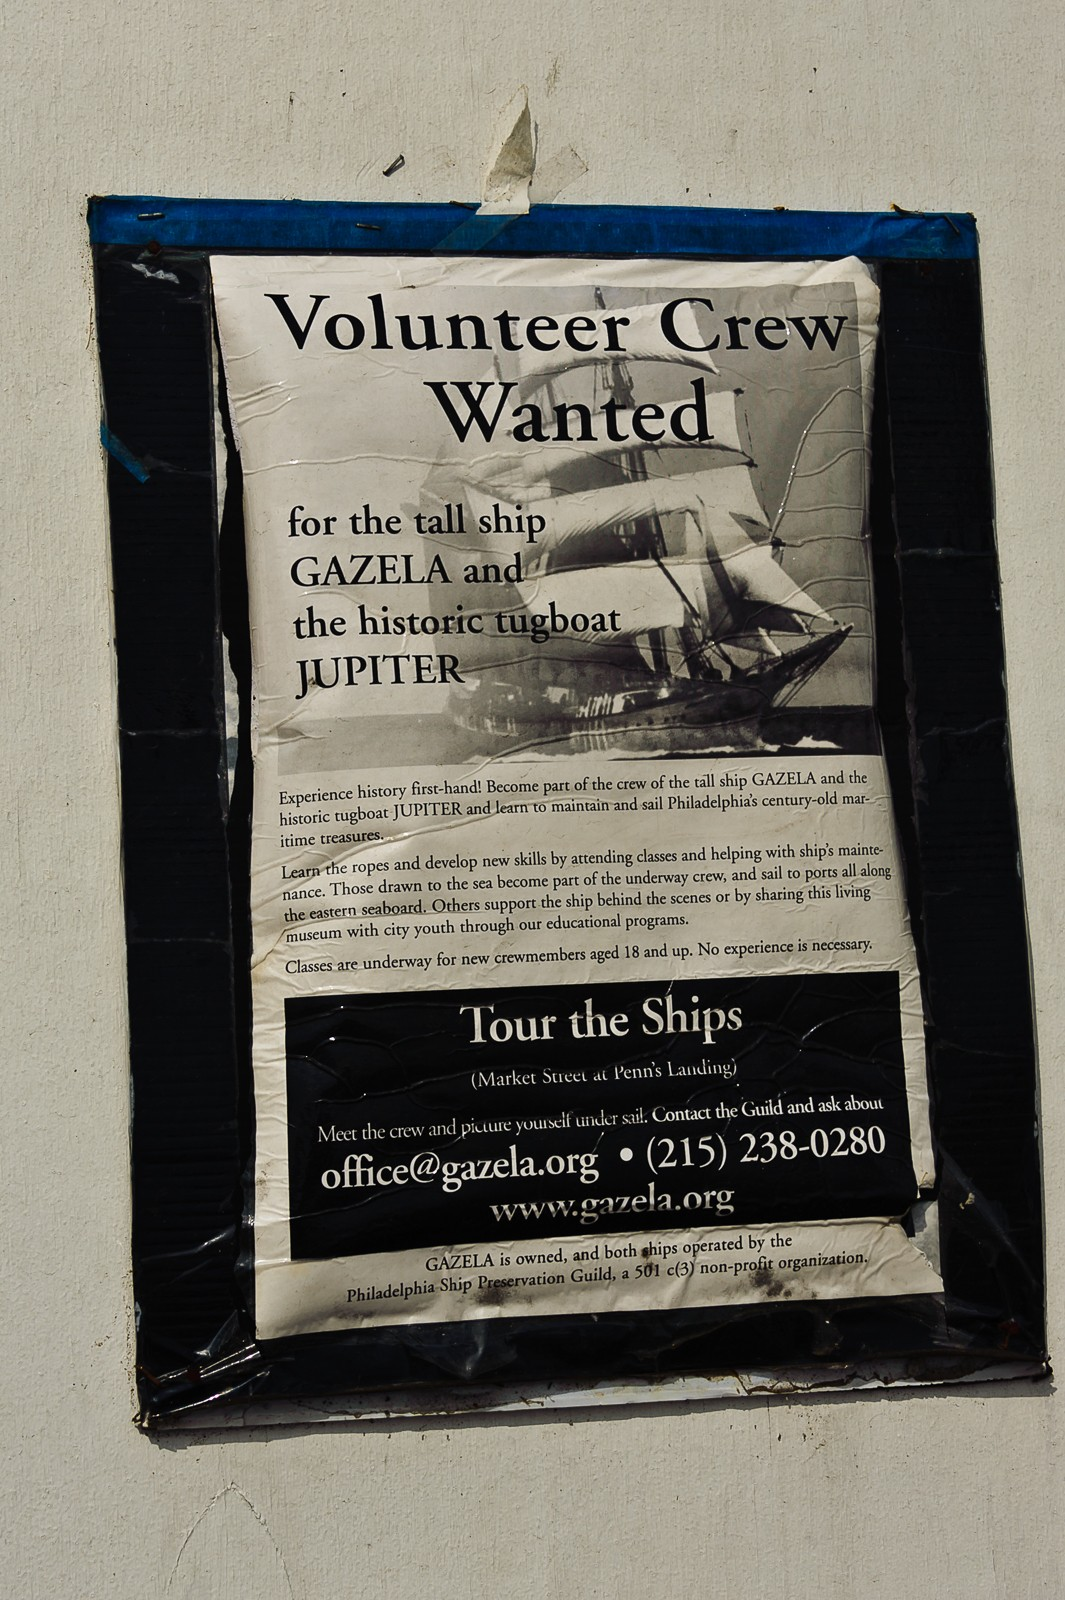 crew-wanted-9071